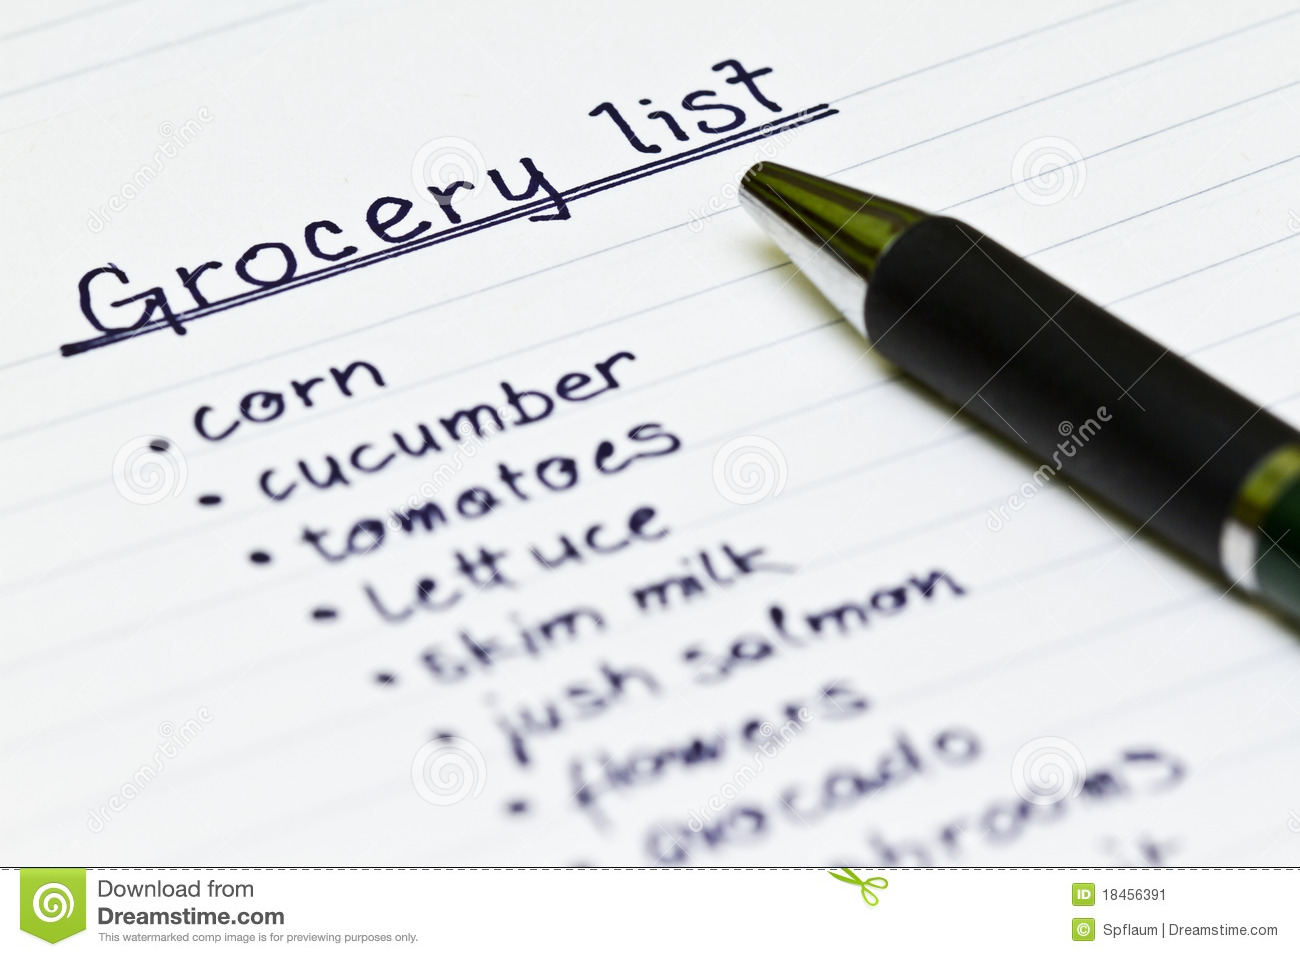 Clipart grocery list clip black and white download Clipart grocery list - ClipartFest clip black and white download